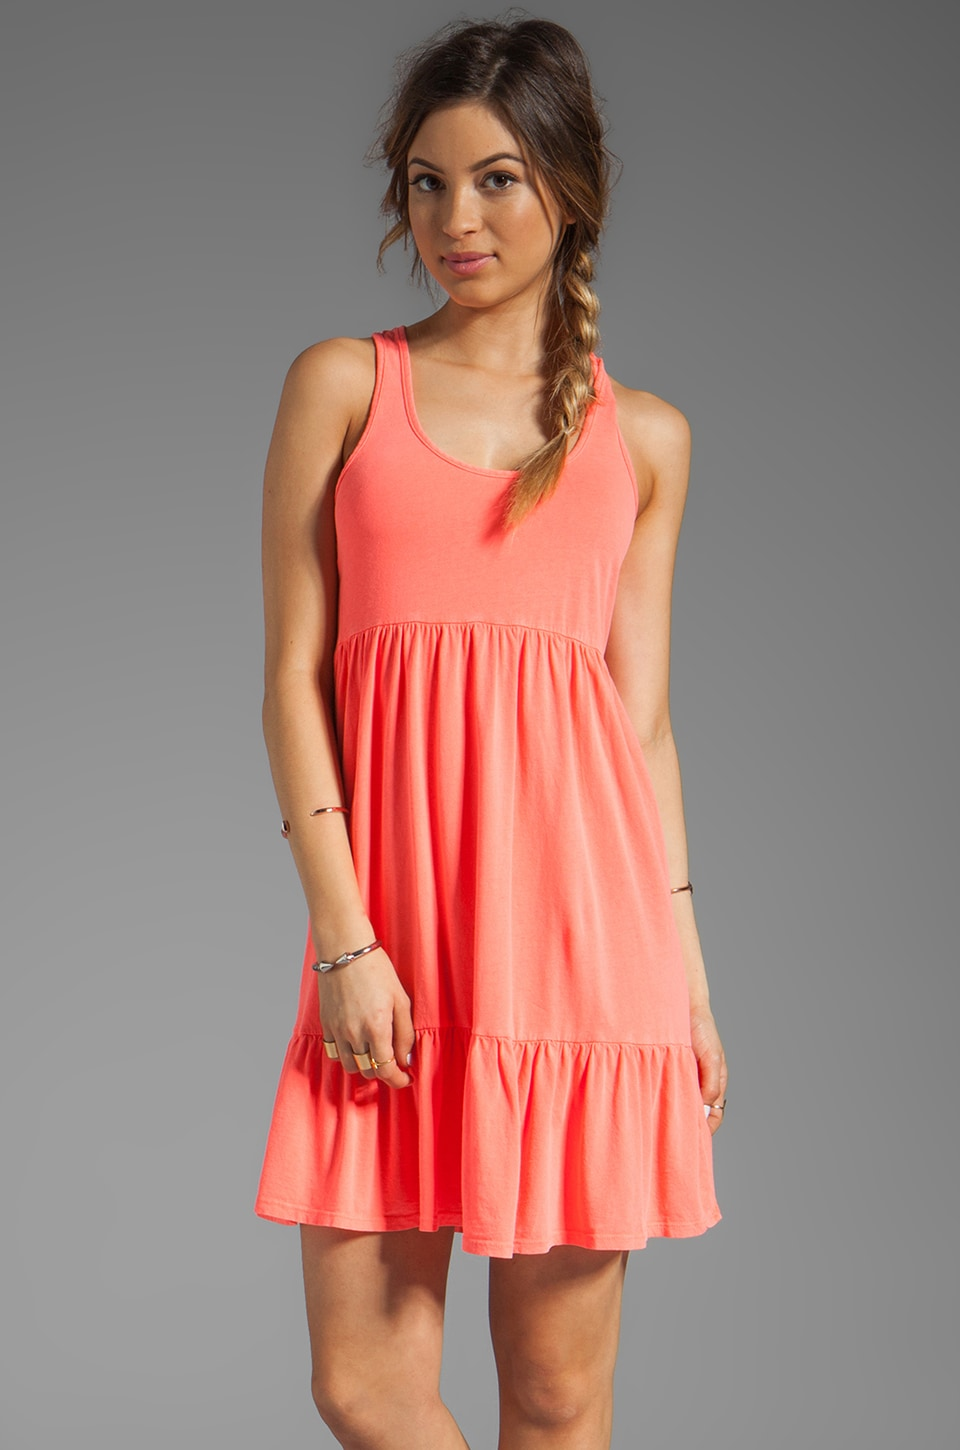 Bobi Light Weight Jersey Tank Dress in Neon Coral